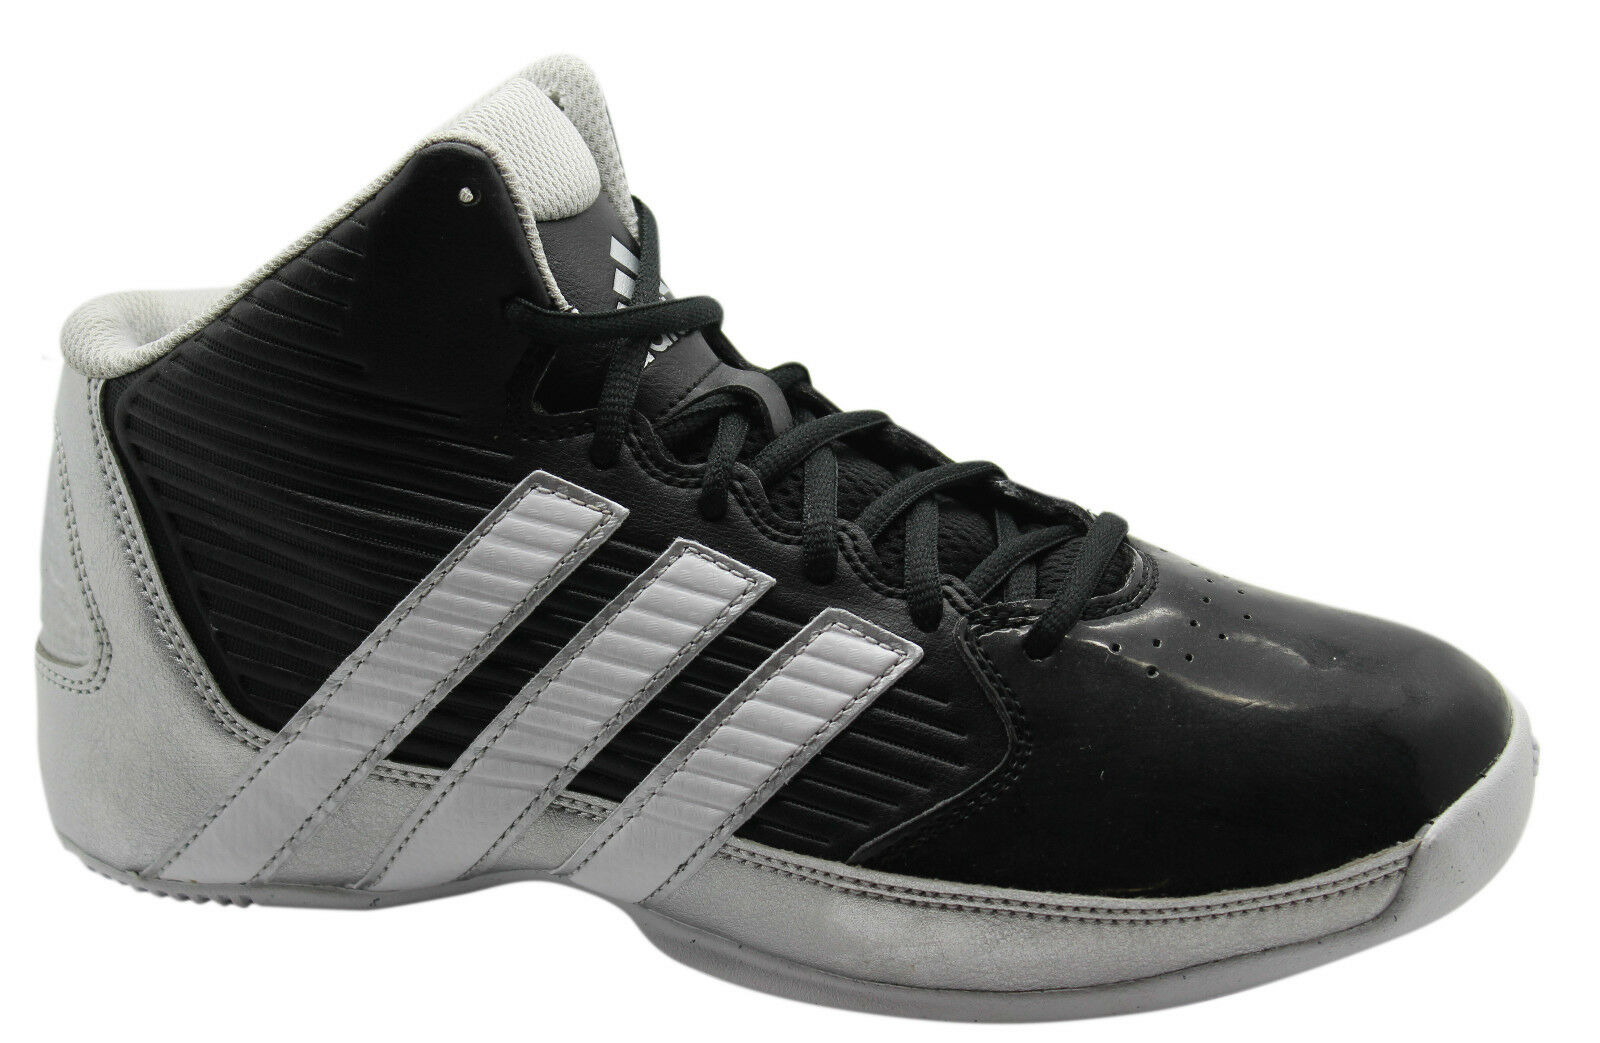 Sports Adidas Performance Trainers B33D C75485 Basketball